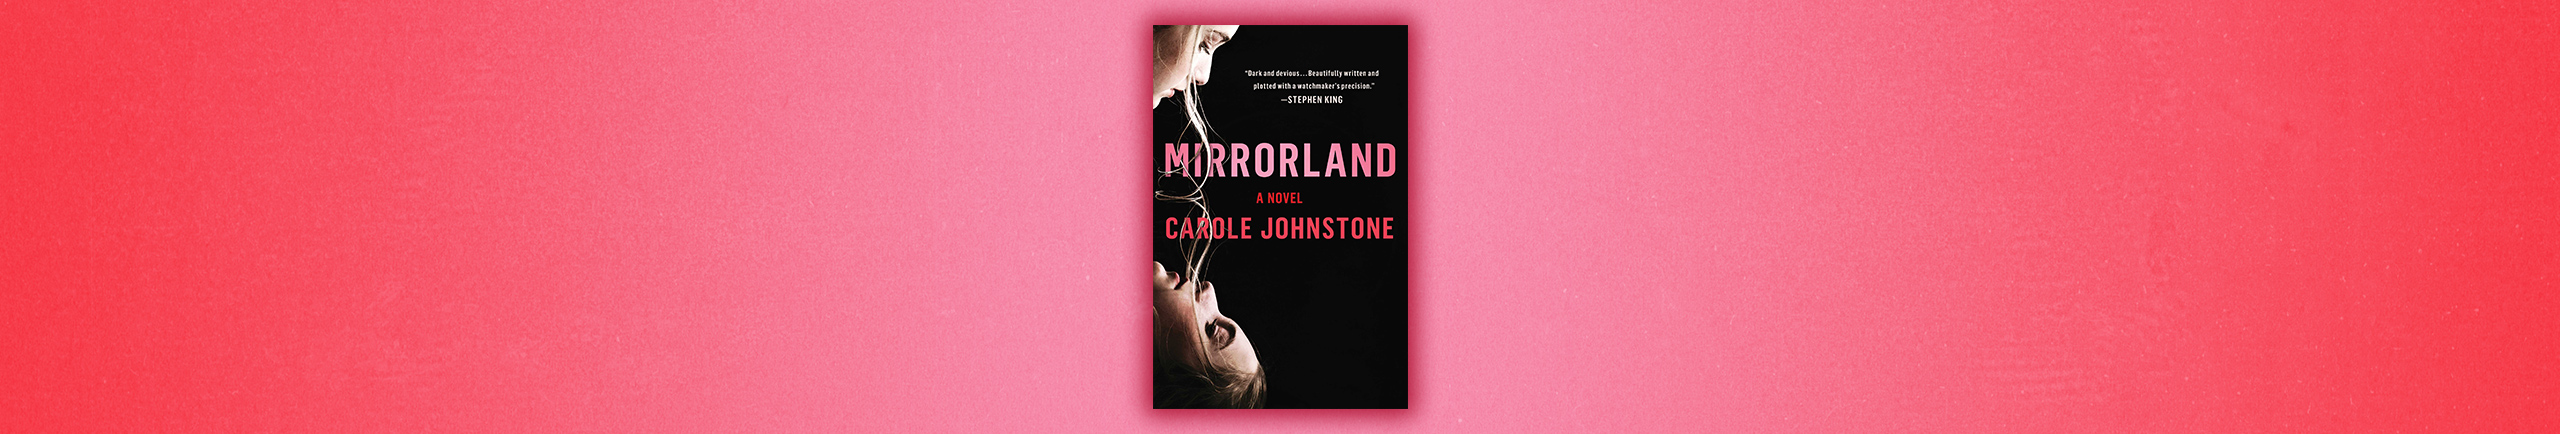 Mirrorland By Carole Johnstone